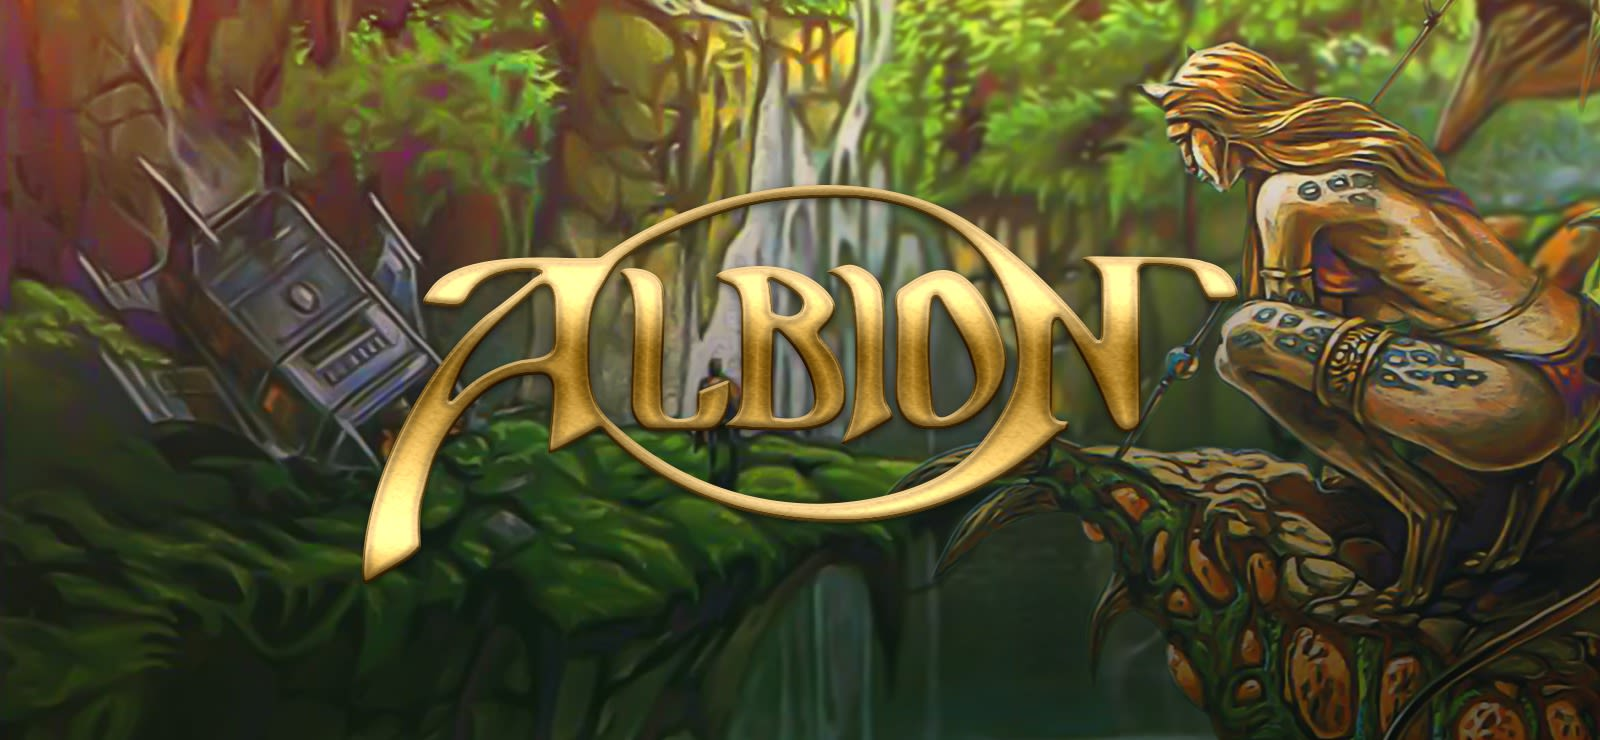 Albion varies-with-device